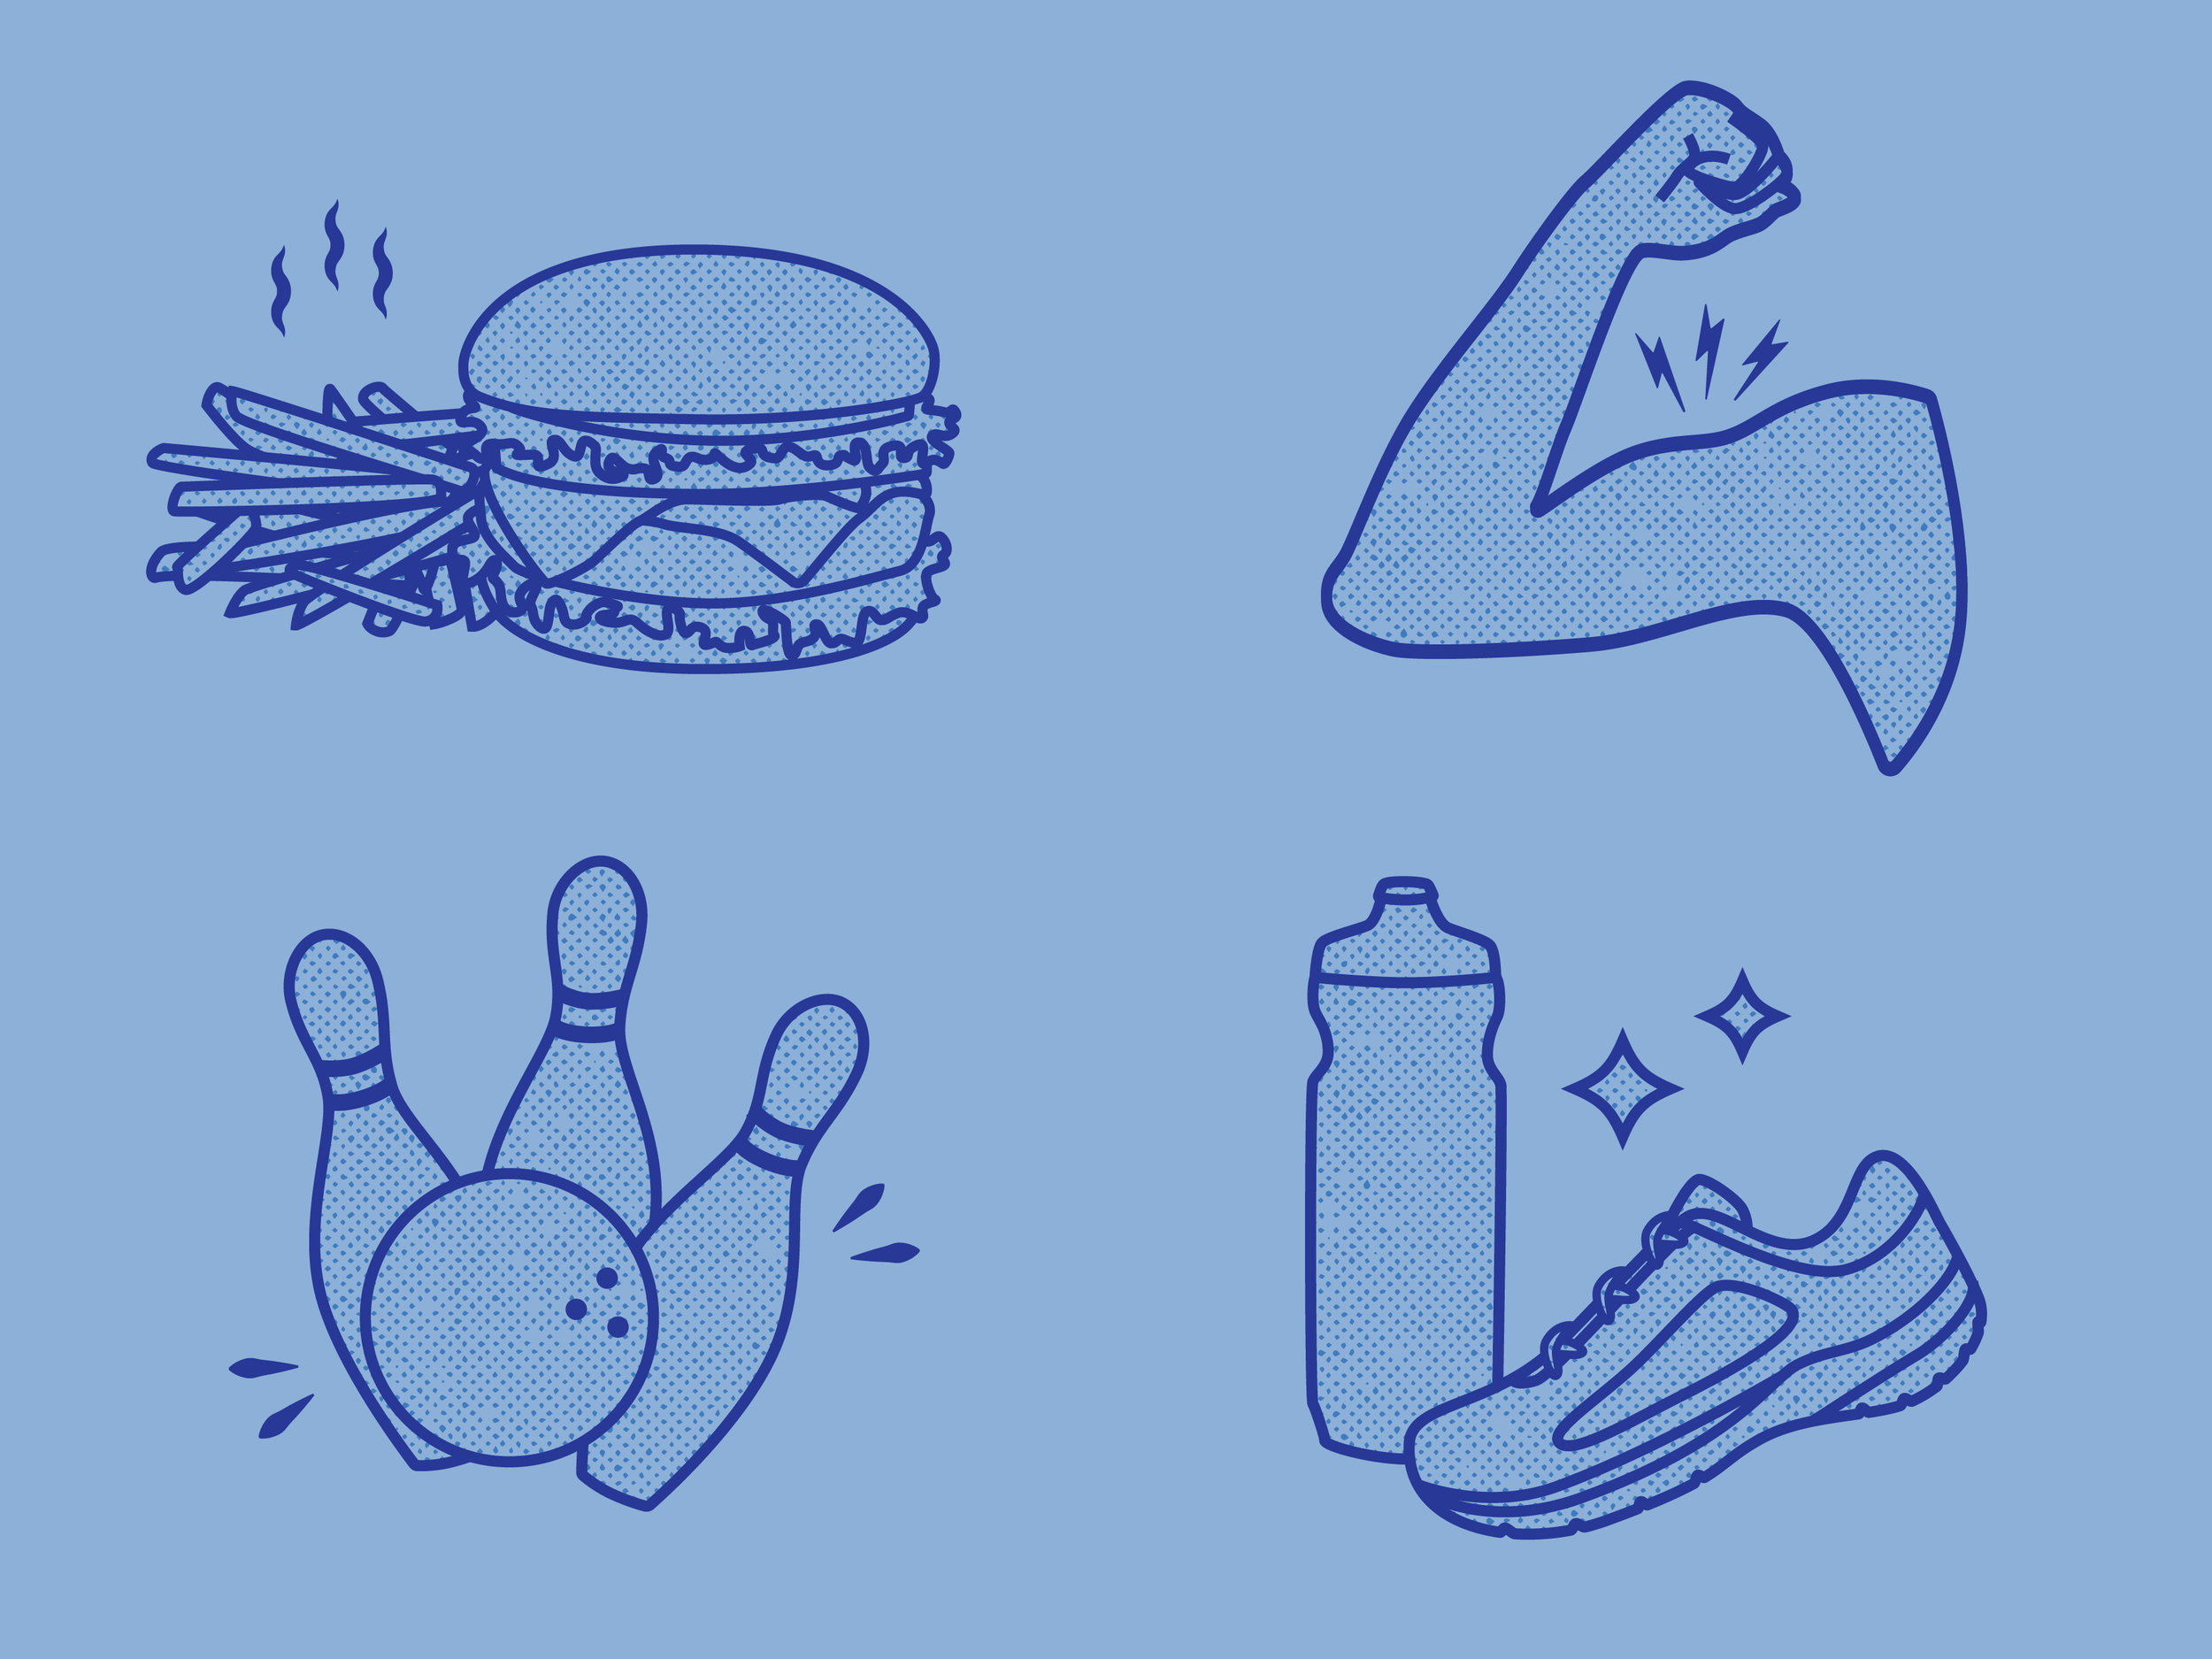 Icons created for the Get Active Card, a new offering that benefits Marathon Kids.